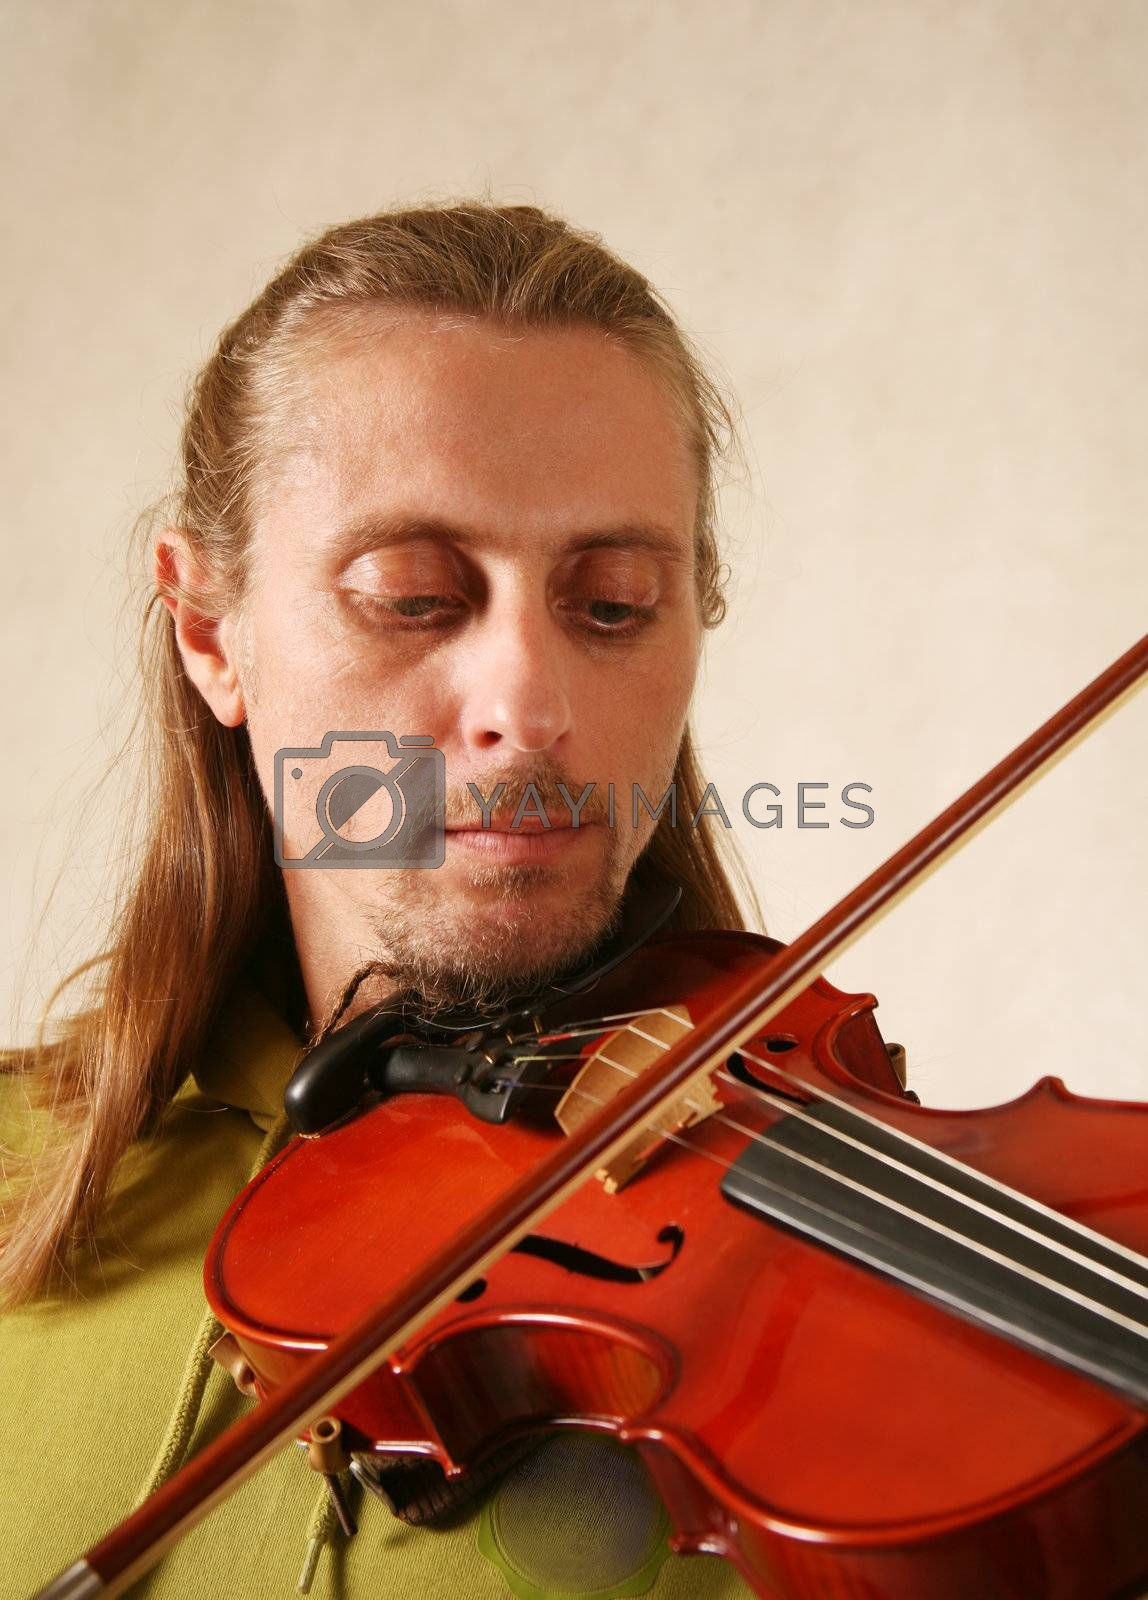 The man playing its violin close-up